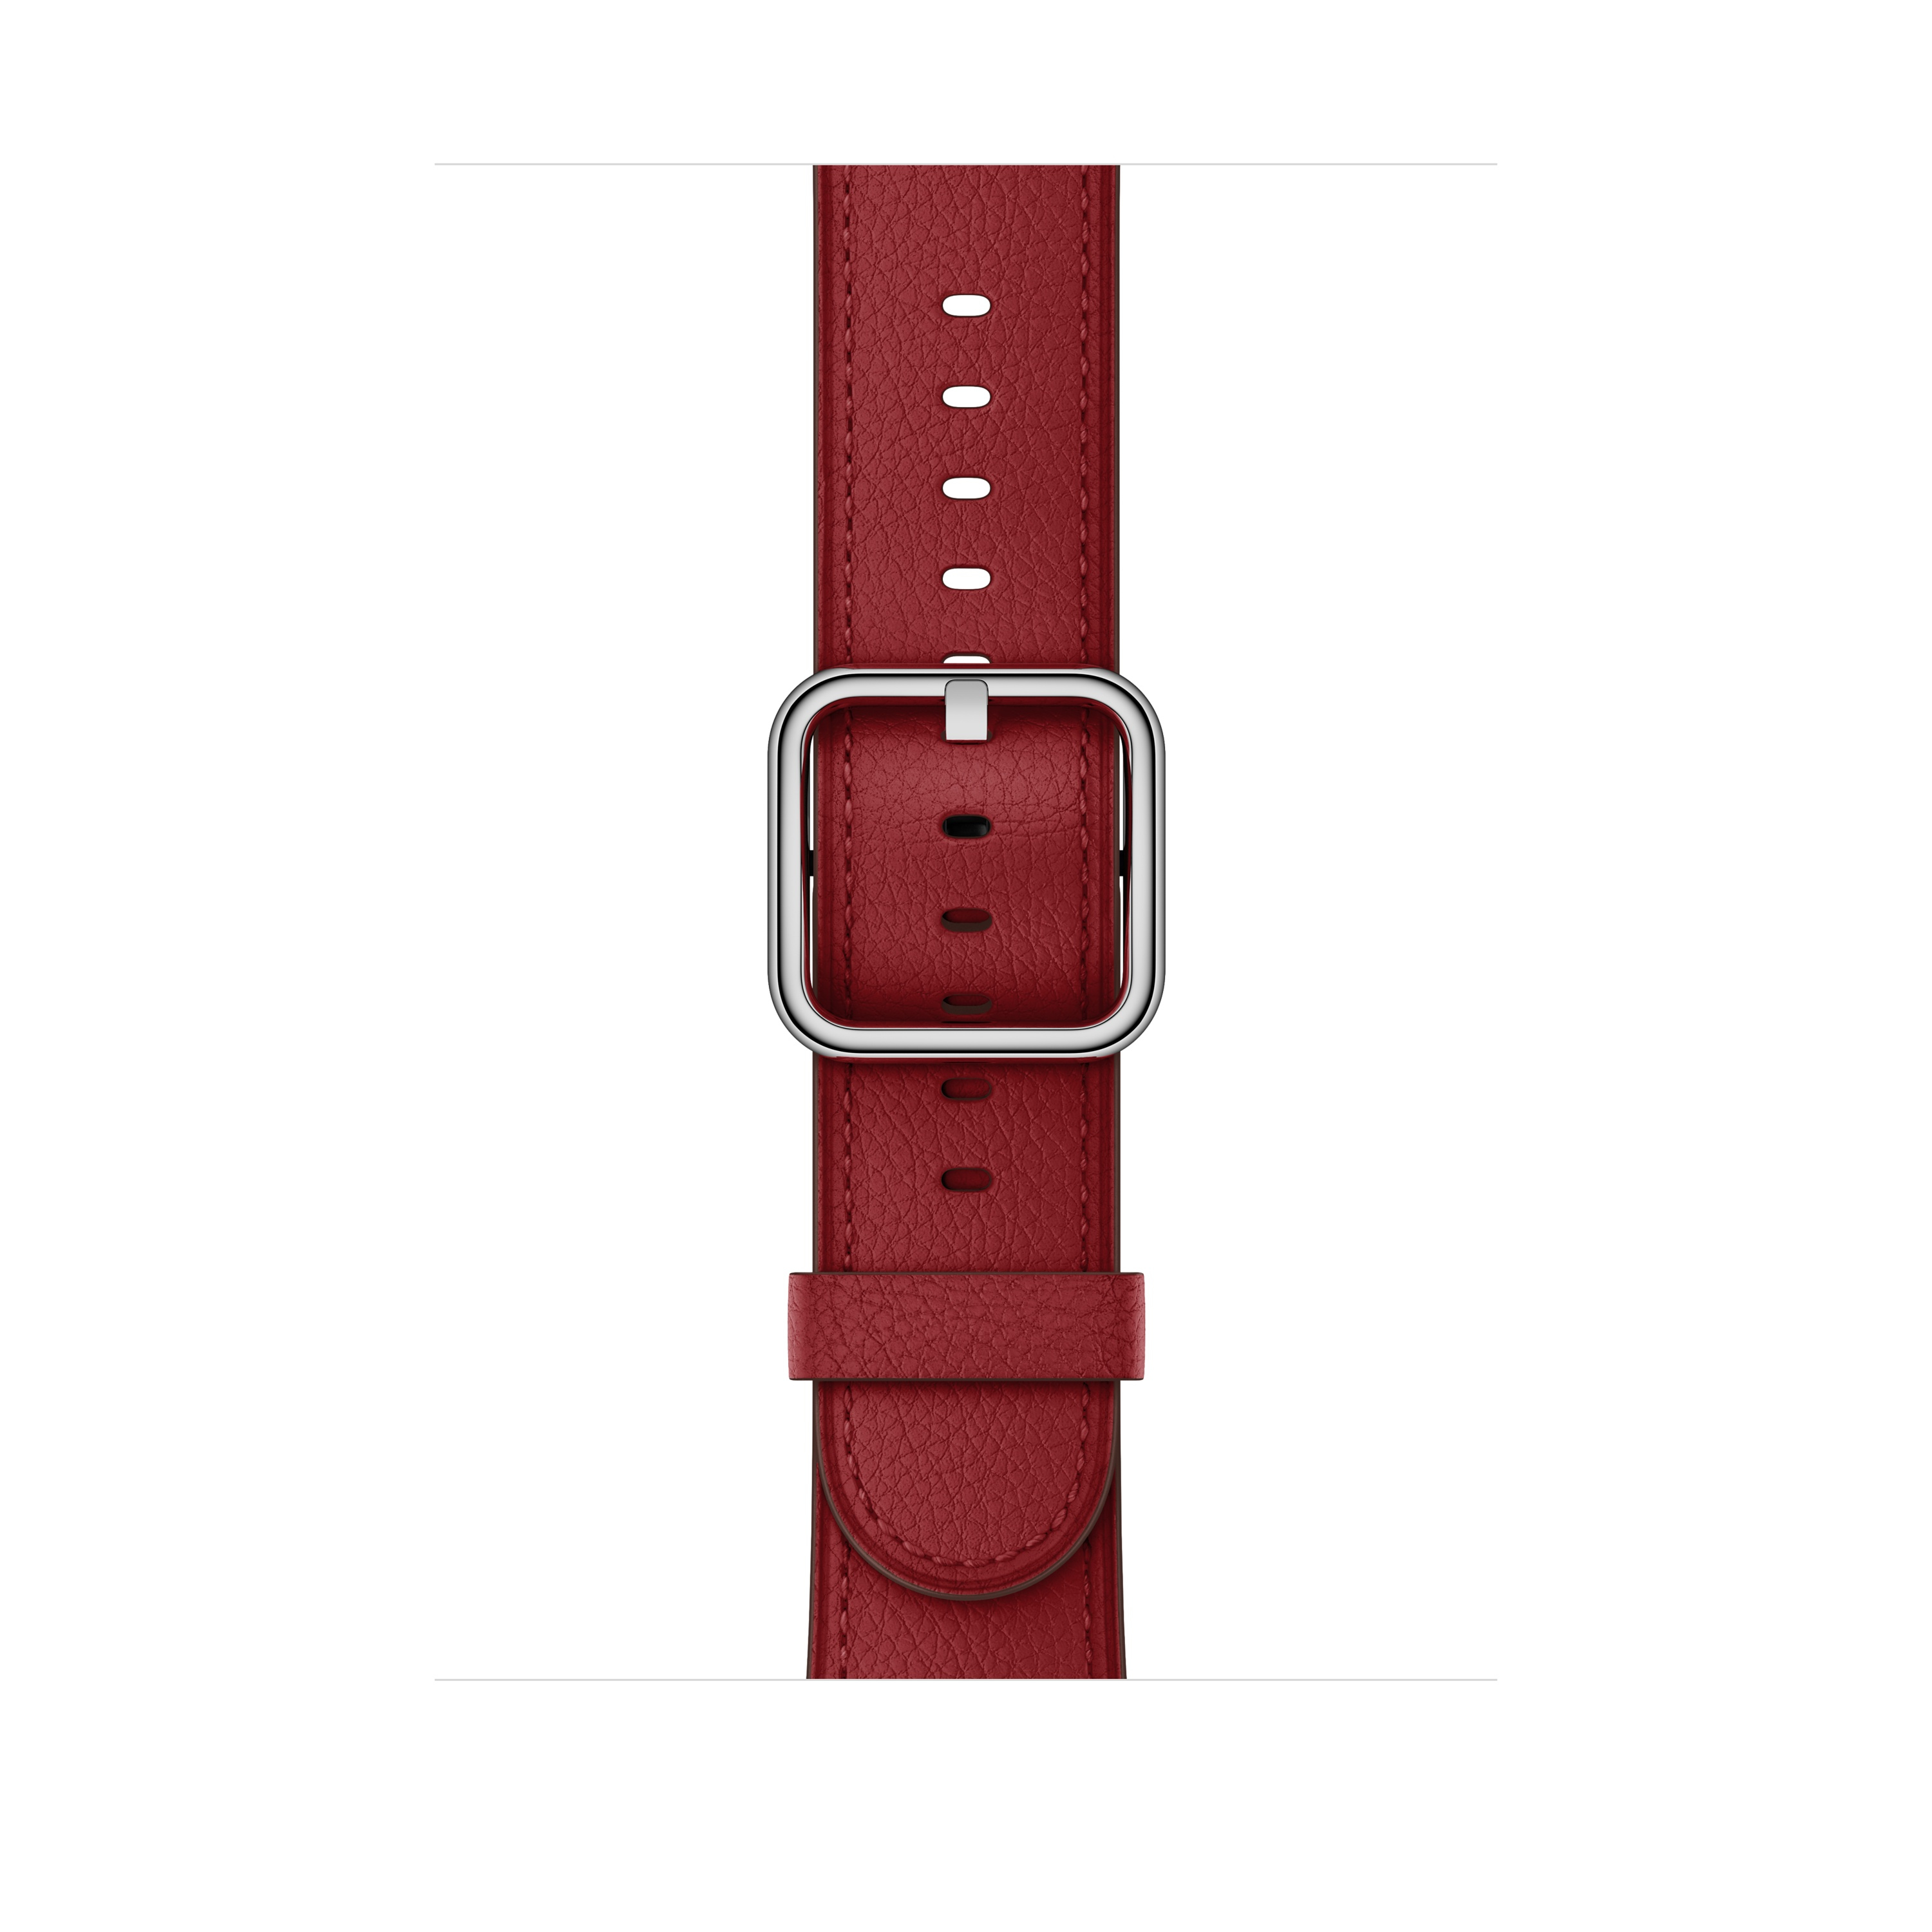 Apple Apple MR3A2ZM/A accessorio per smartwatch Band Rosso Pelle